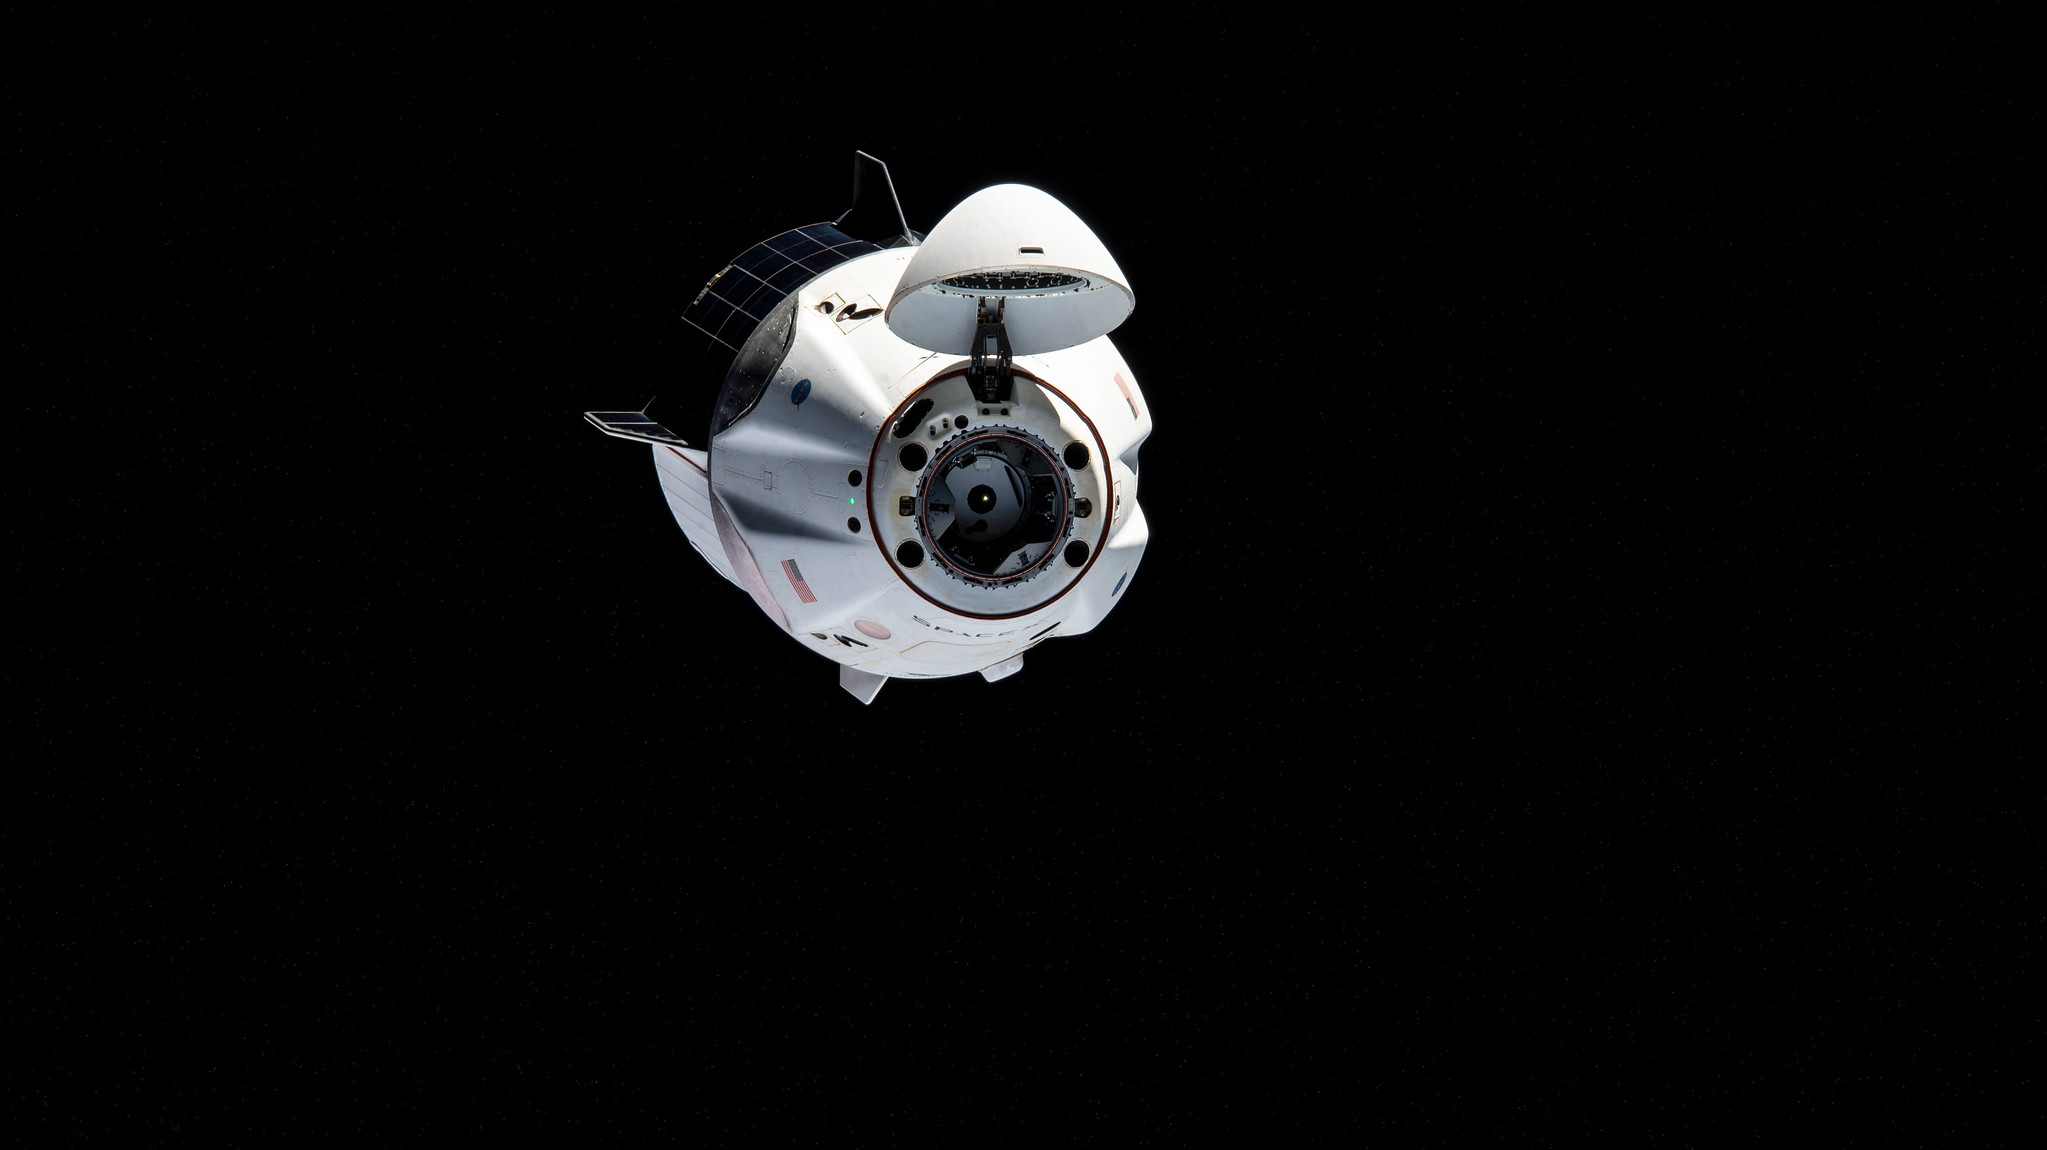 The SpaceX Crew-1 Dragon maneuvers to another port on the International Space Station on April 5, 2021